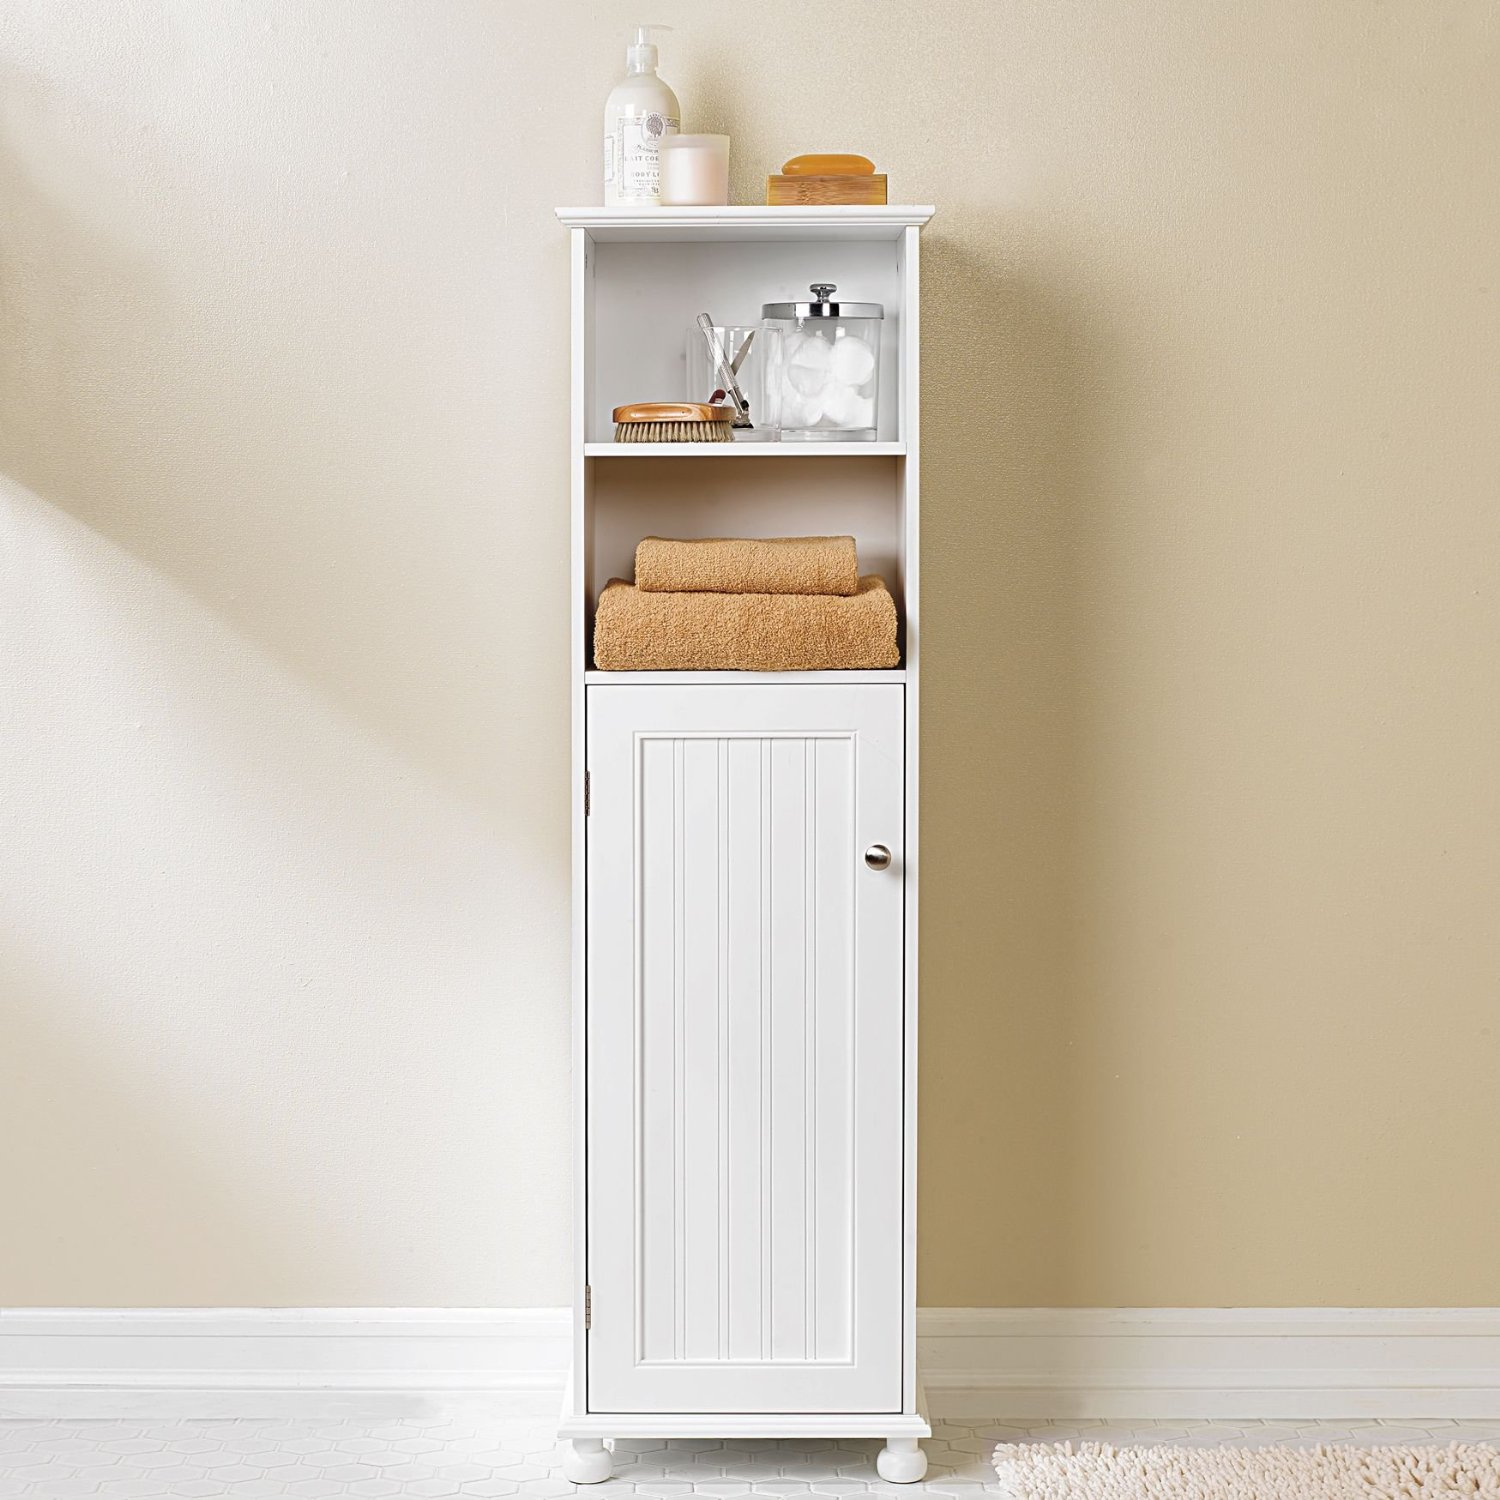 Awesome storage cabinets for bathroom bathroom storage cabinets content which is listed within storage rczycbd